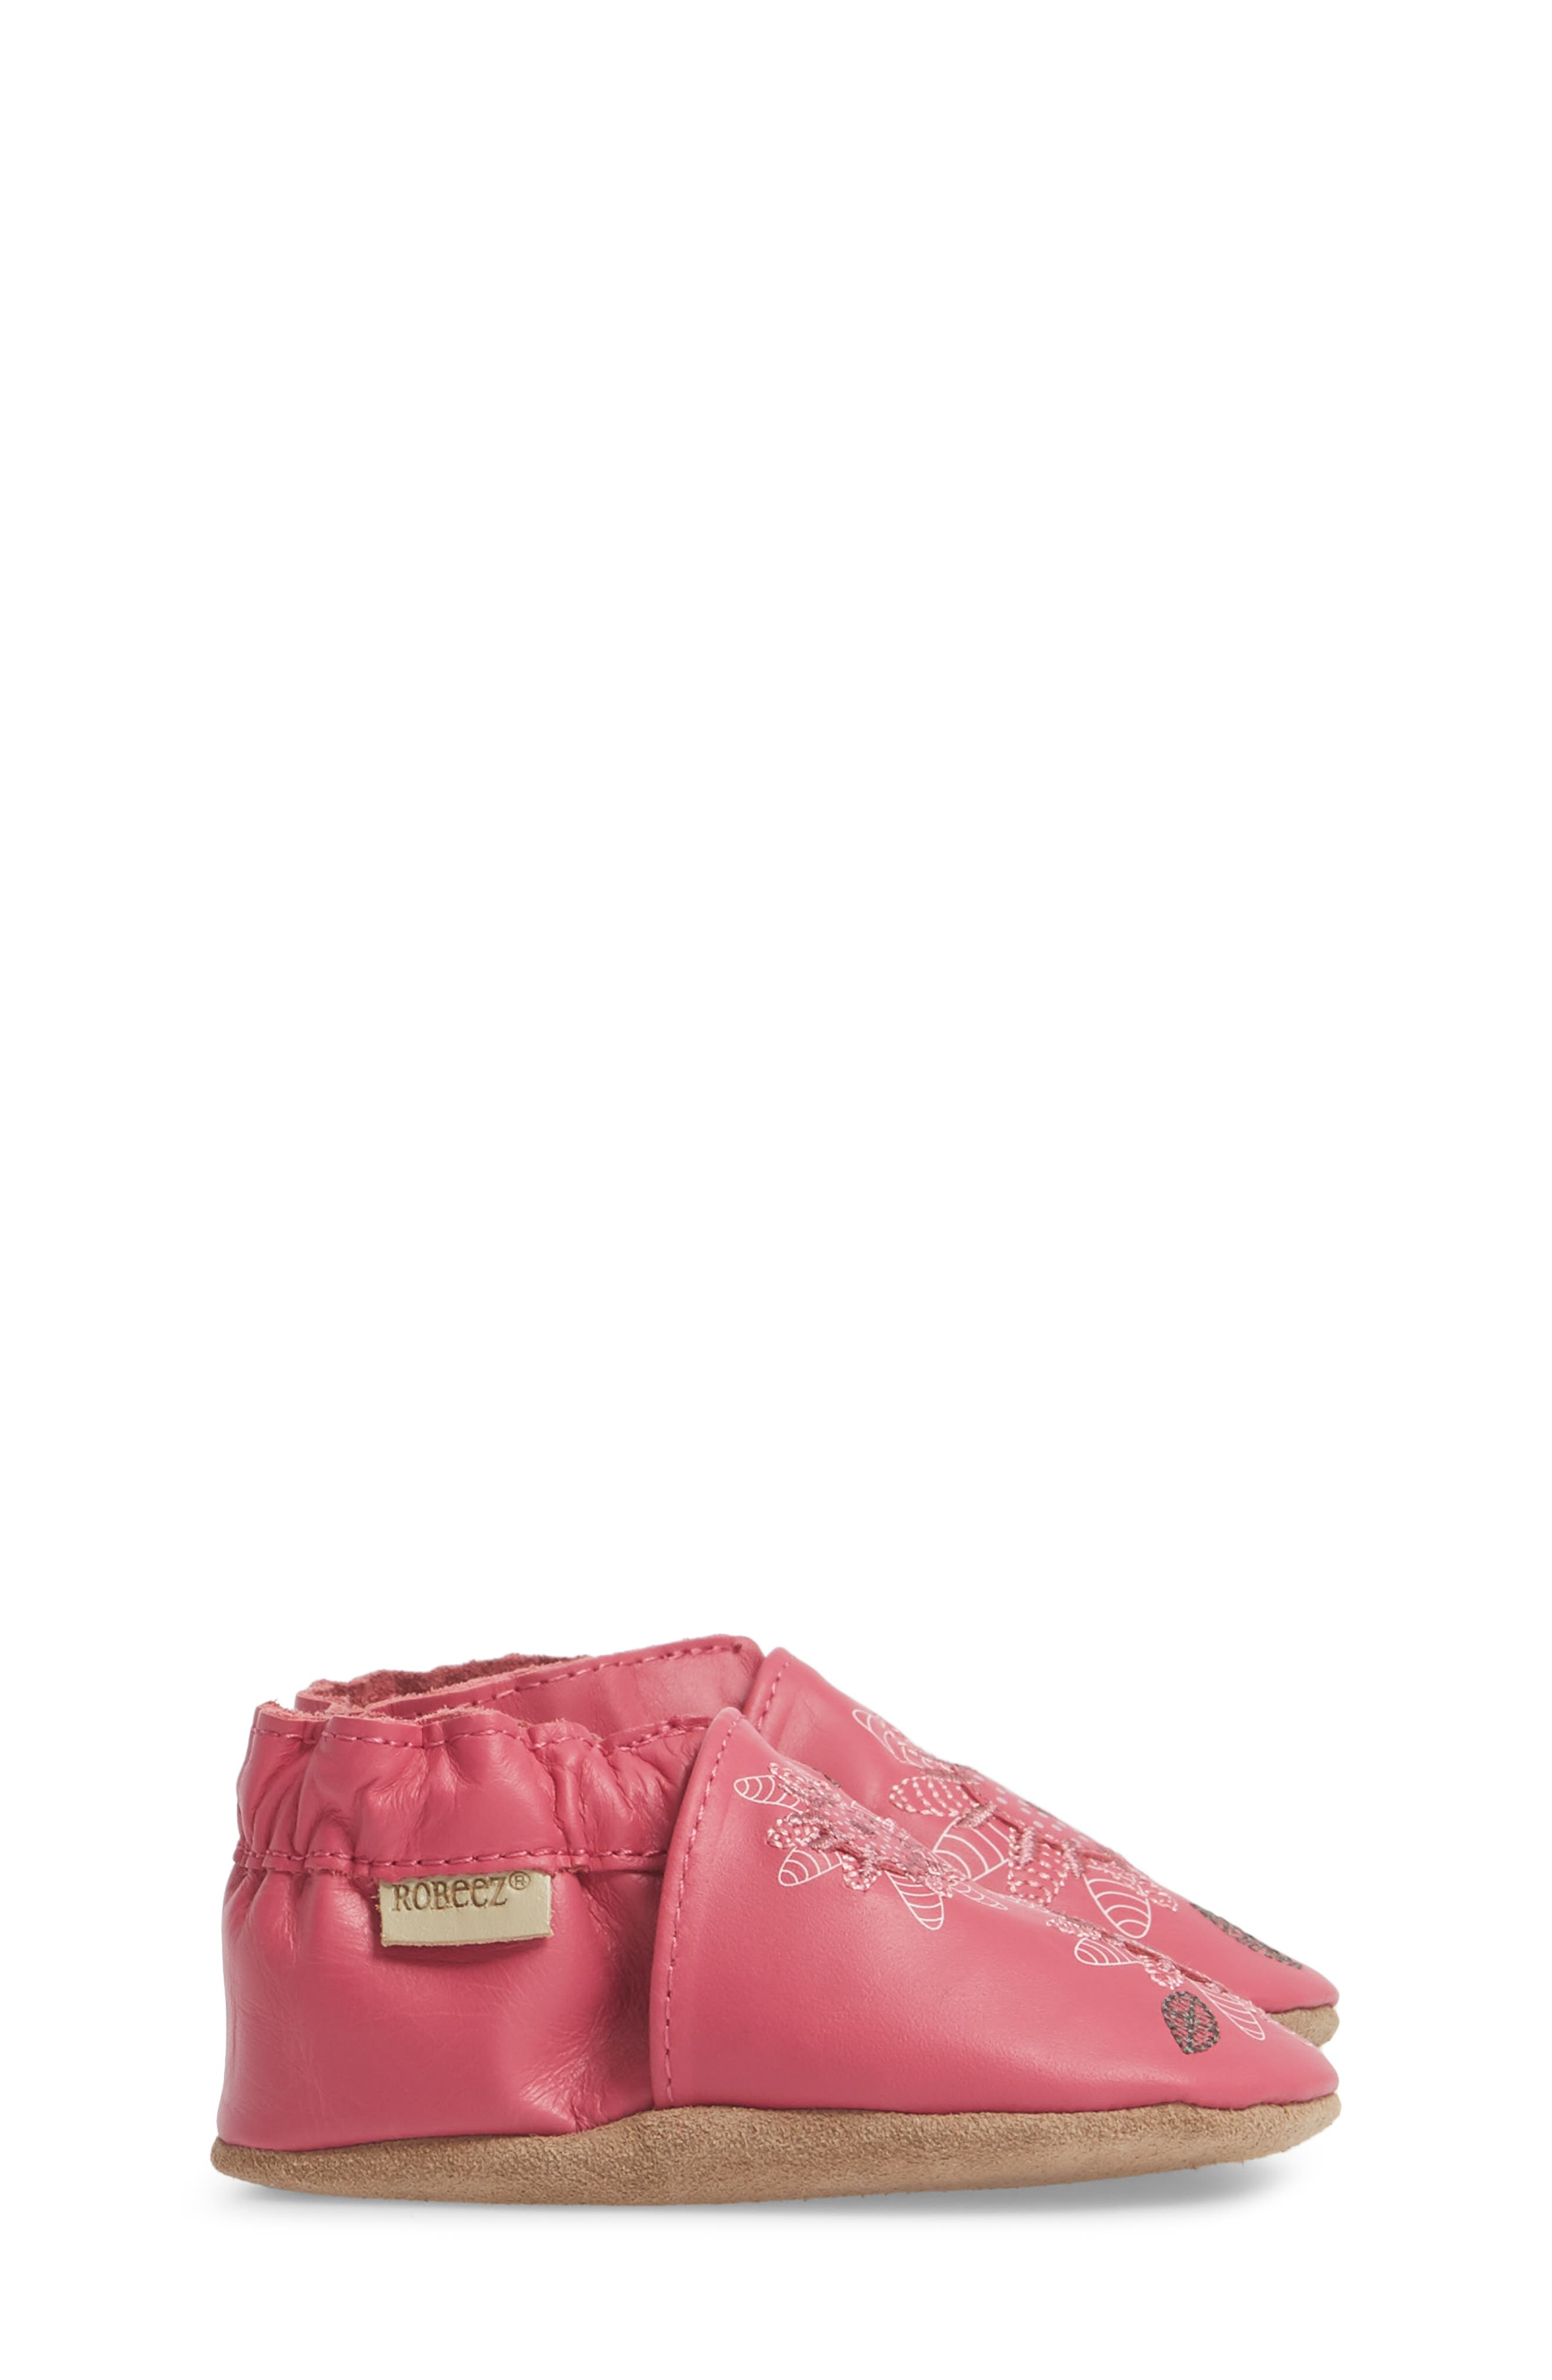 ROBEEZ<SUP>®</SUP>, Fiona Flower Moccasin Crib Shoe, Alternate thumbnail 3, color, HOT PINK